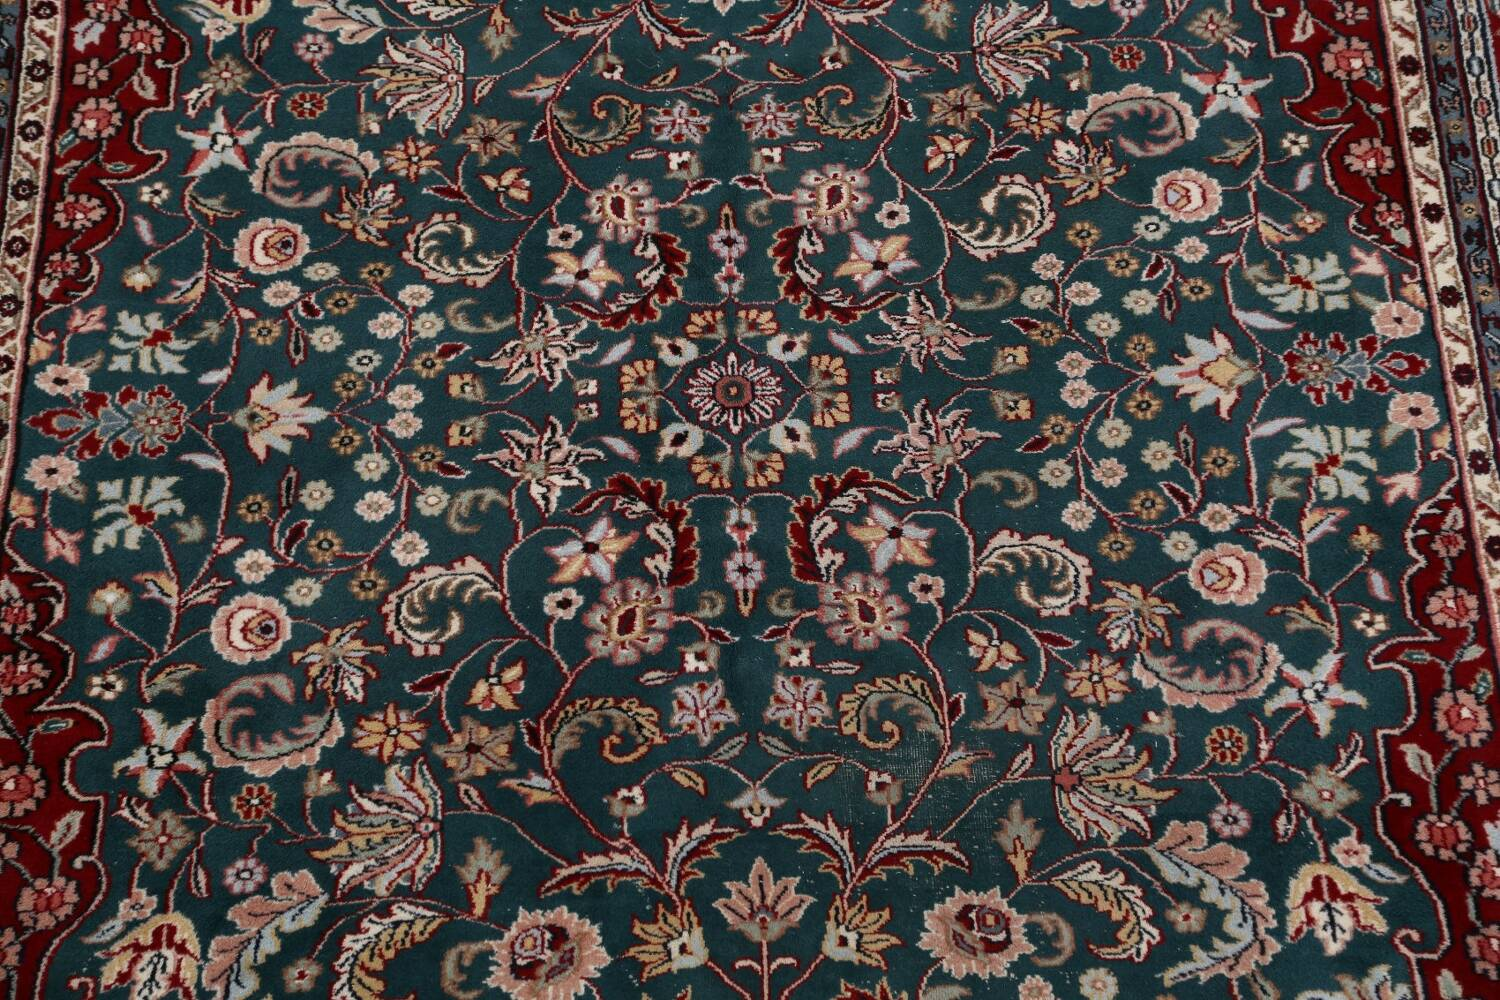 Floral Green Aubusson Oriental Area Rug 8x10 image 4